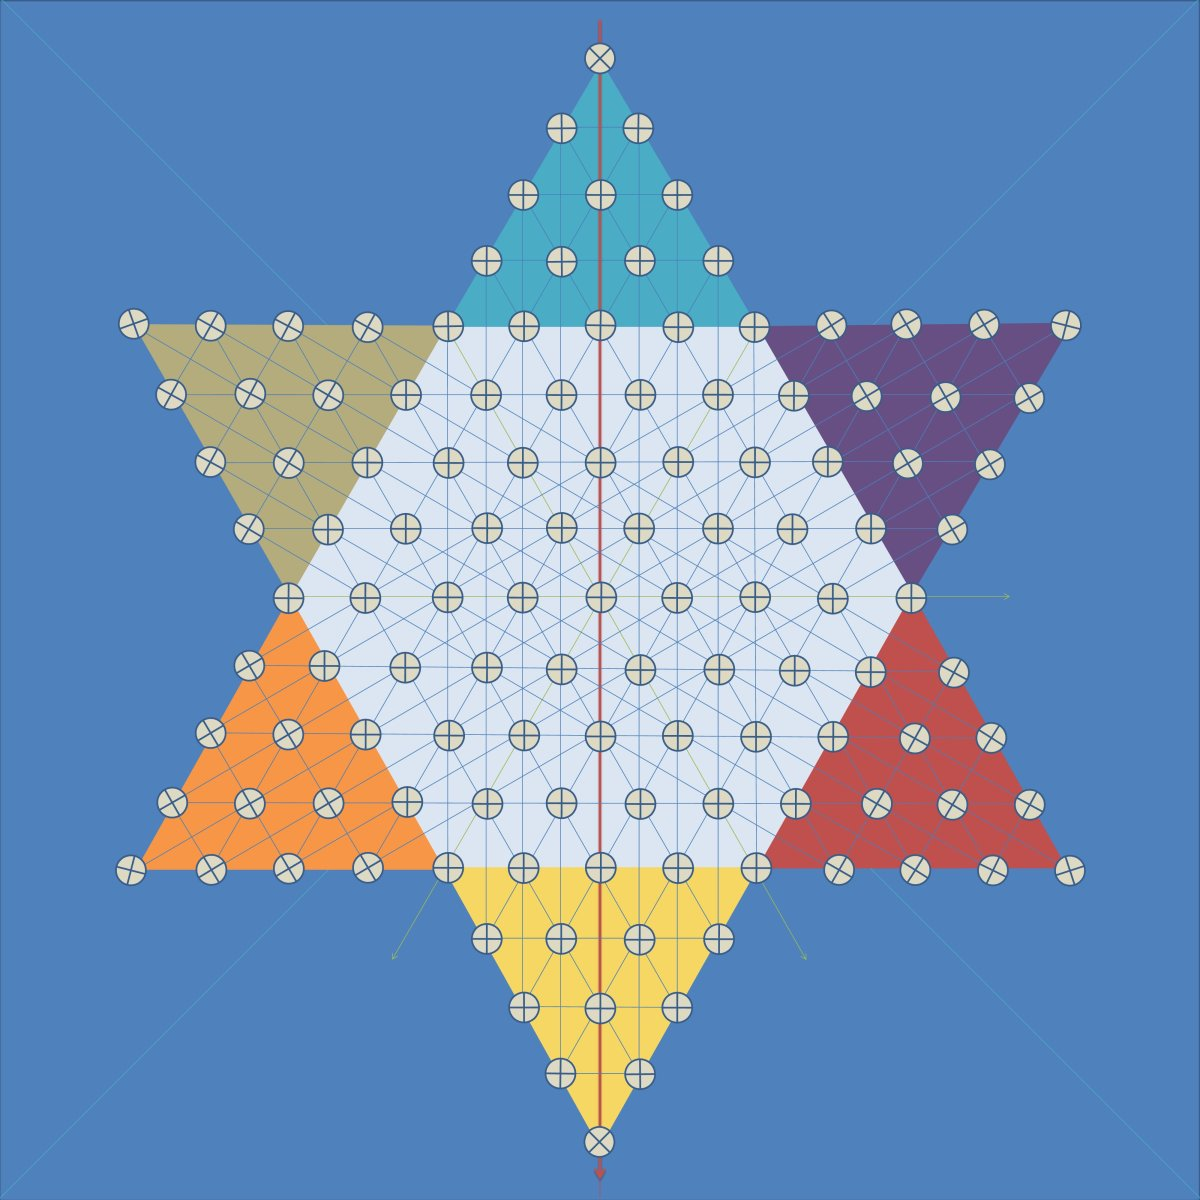 Figure 5 - A full marked star is composed of: 10-holes per triangle, 61 holes on the hexagon, 121 holes in total.